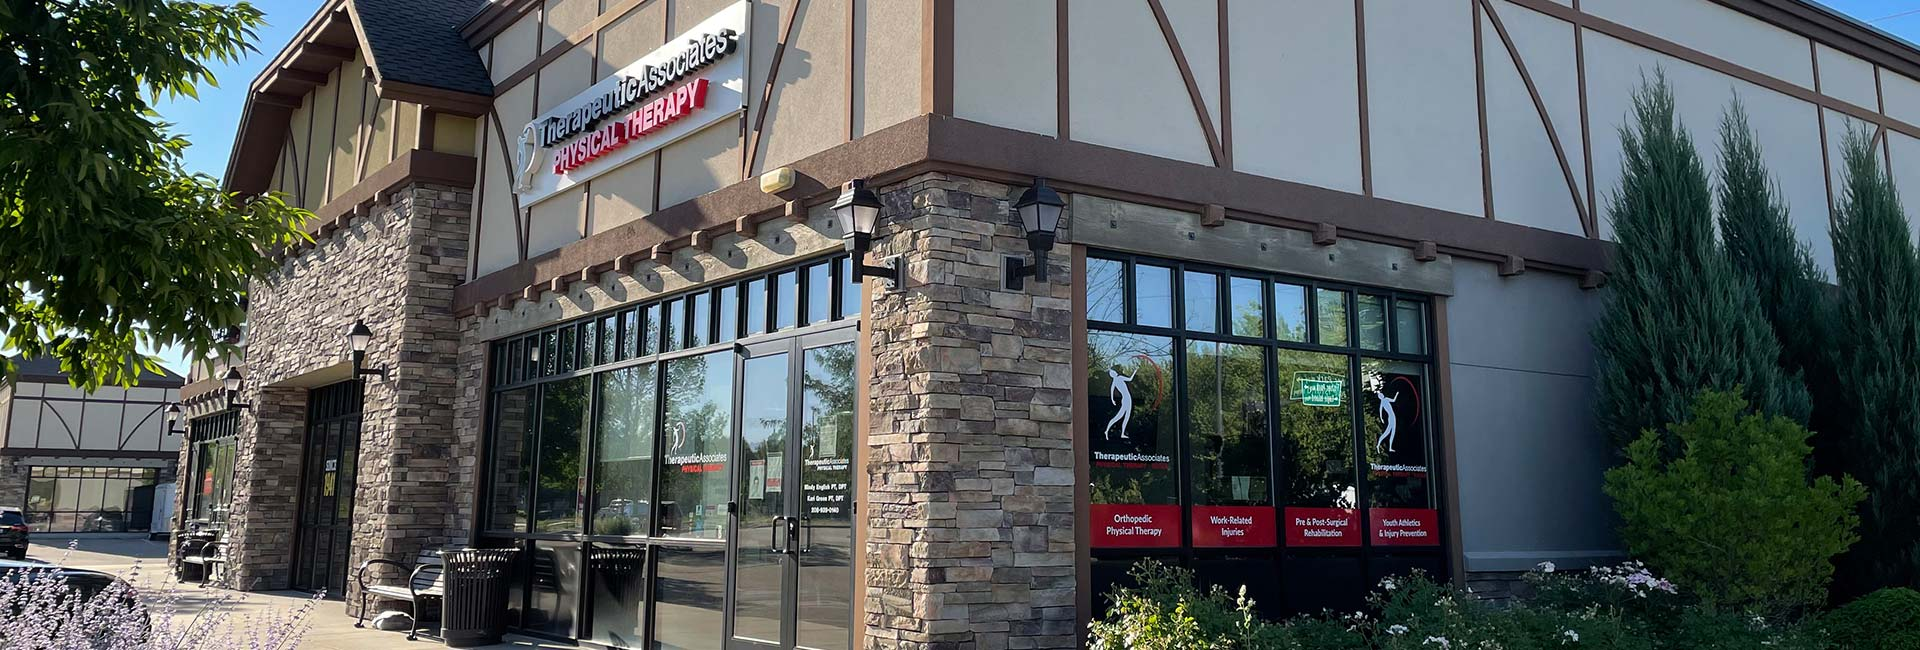 Exterior - Therapeutic Associates Physical Therapy - Eagle